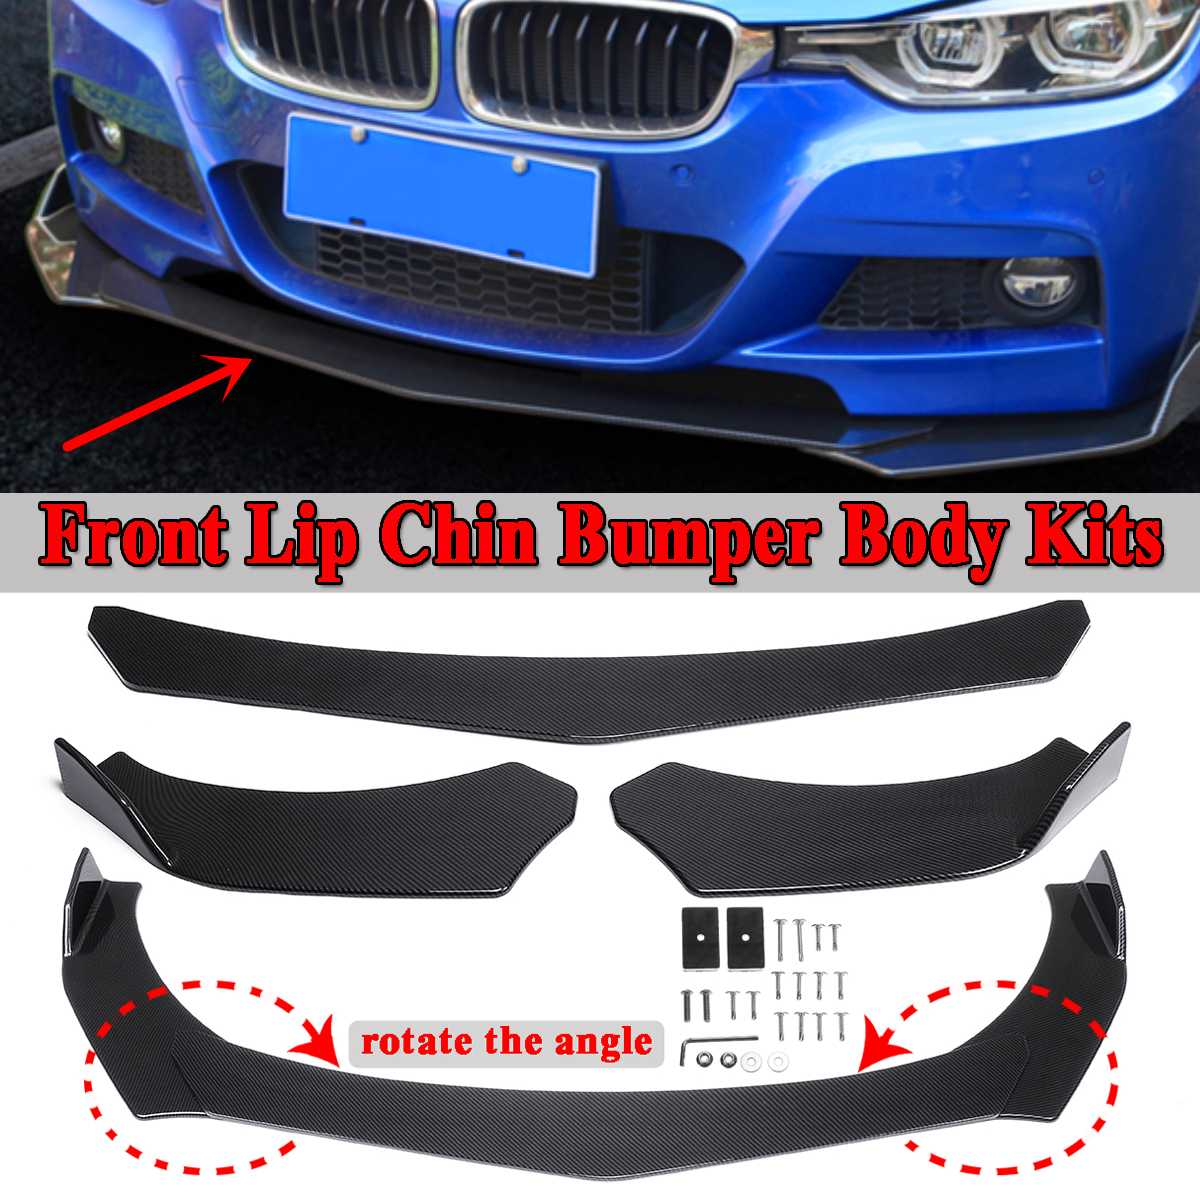 Carbon Fiber Look 3pcs Universal Car Front Lower Bumper Lip Bumper Spoiler Lip Body Kit Rotate Angle For Benz For BMW For Civic